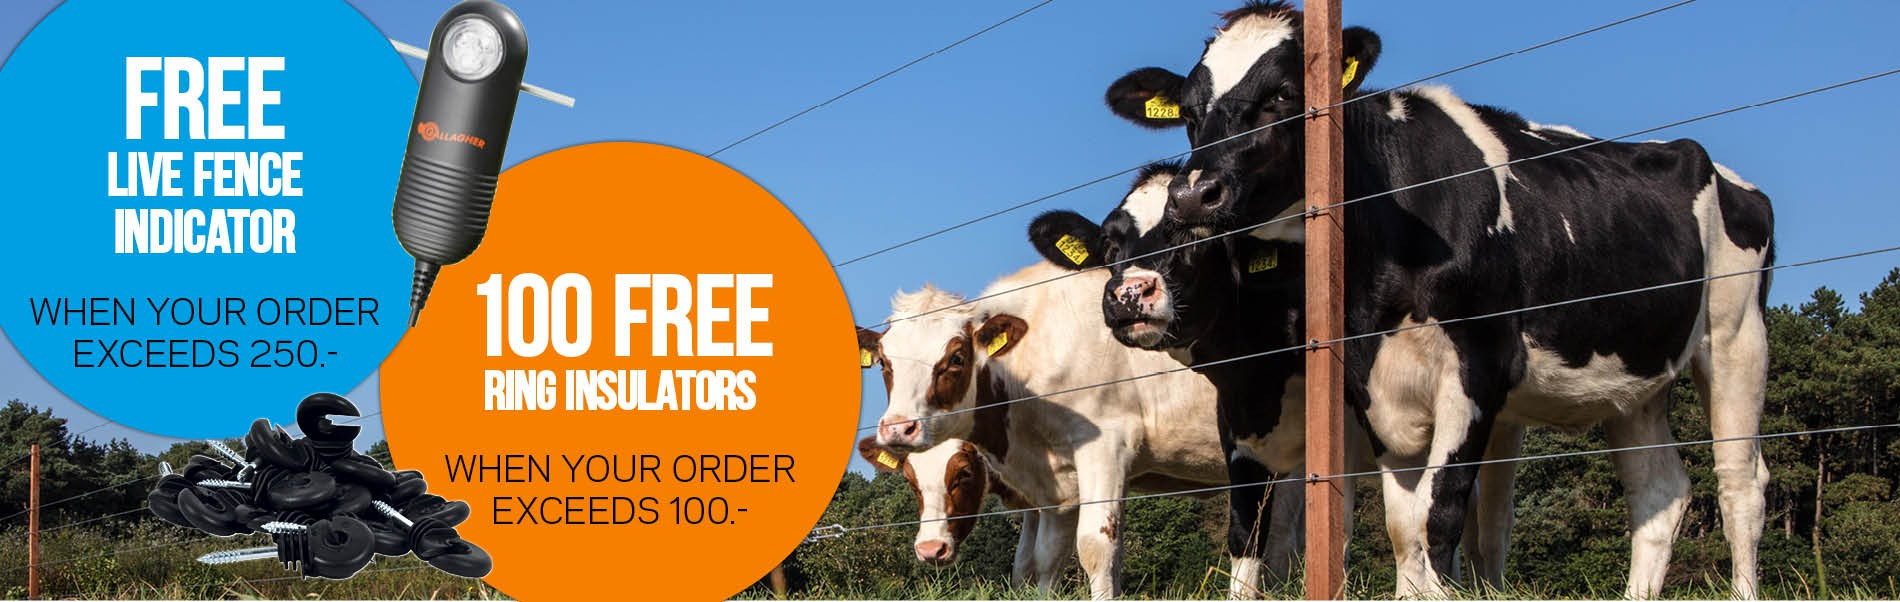 Free Live Fence Indicator when your order exceeds 250.-